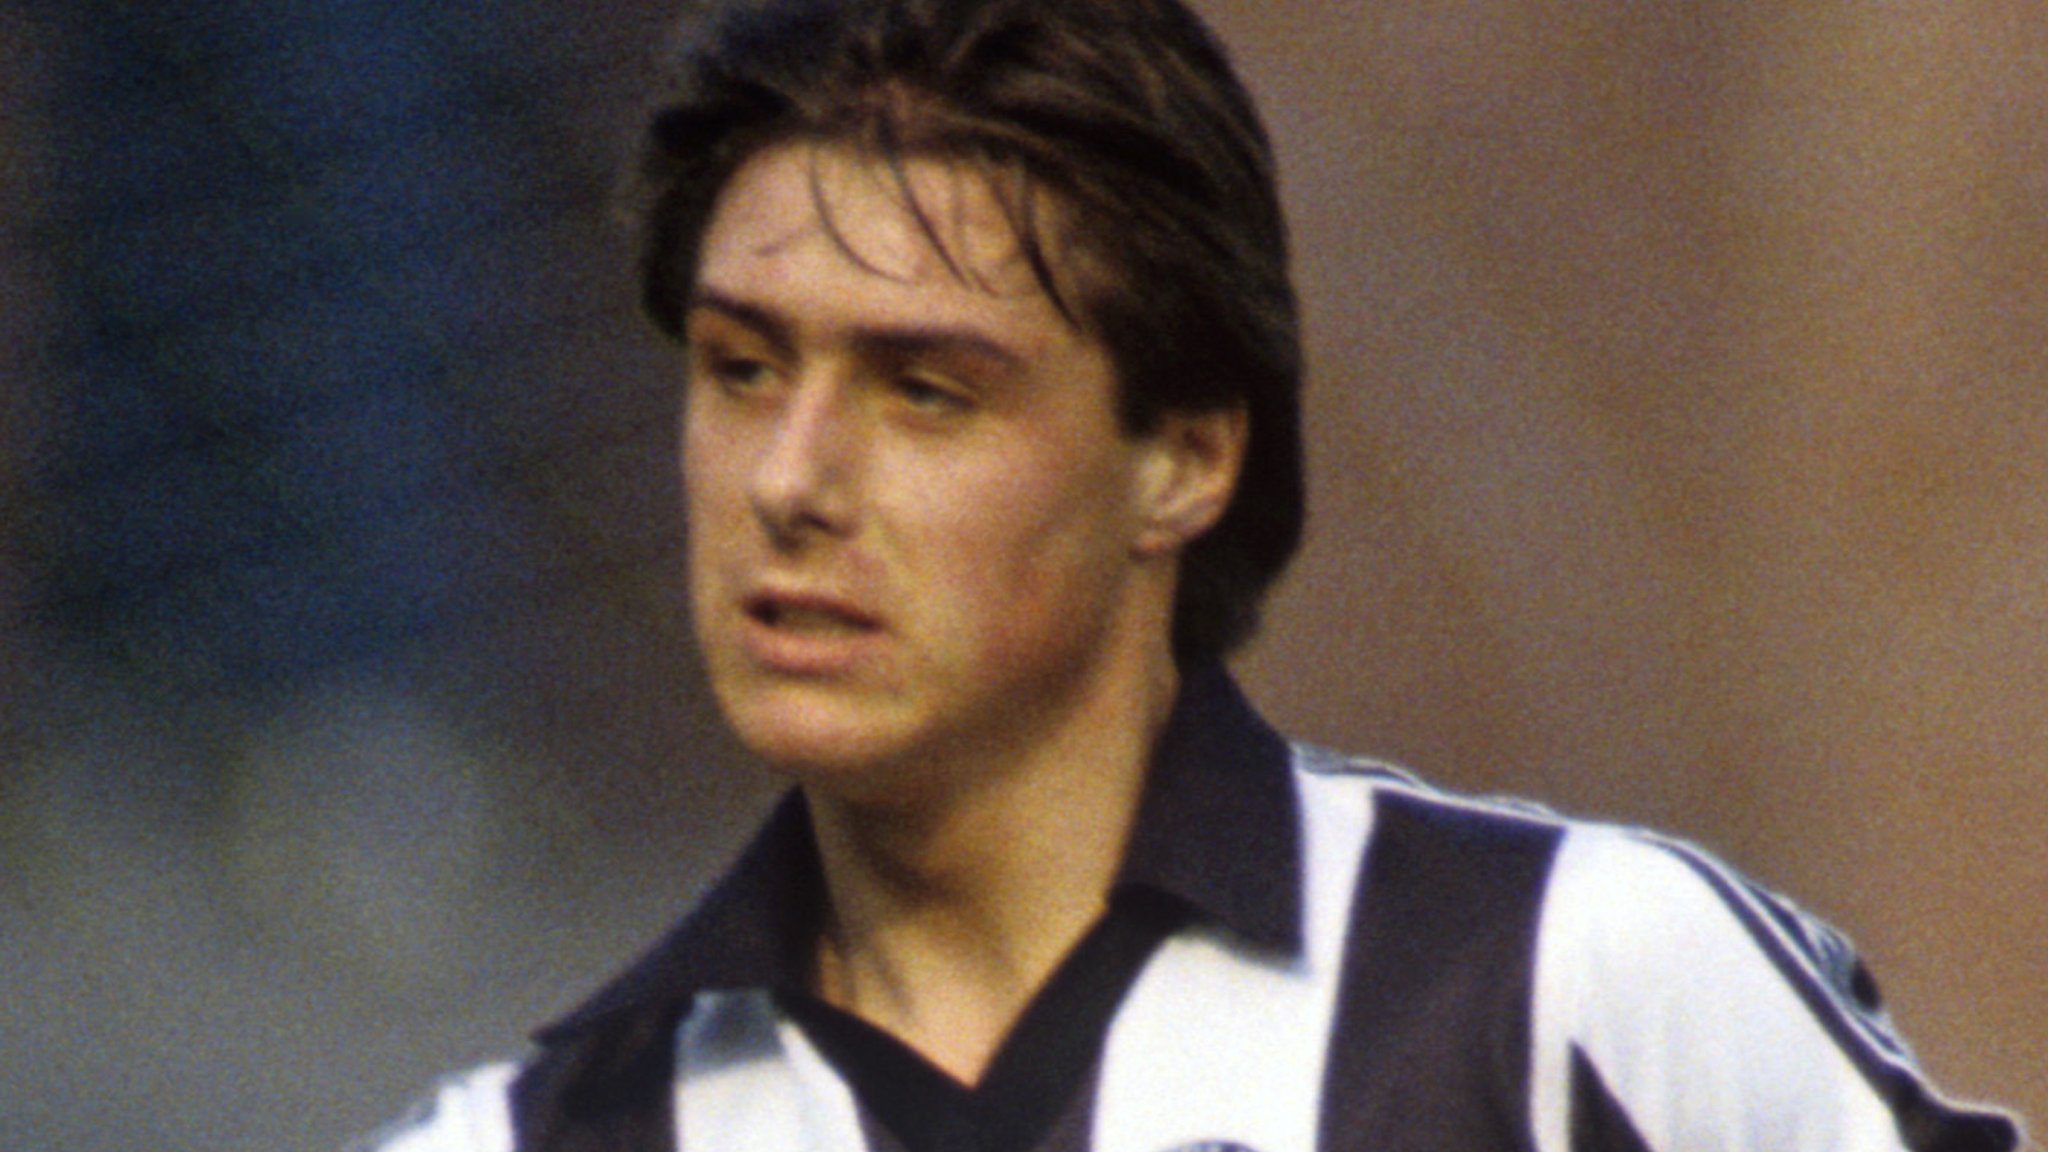 Football child sex abuse: Ex-Newcastle player Derek Bell 'wanted to kill abuser'